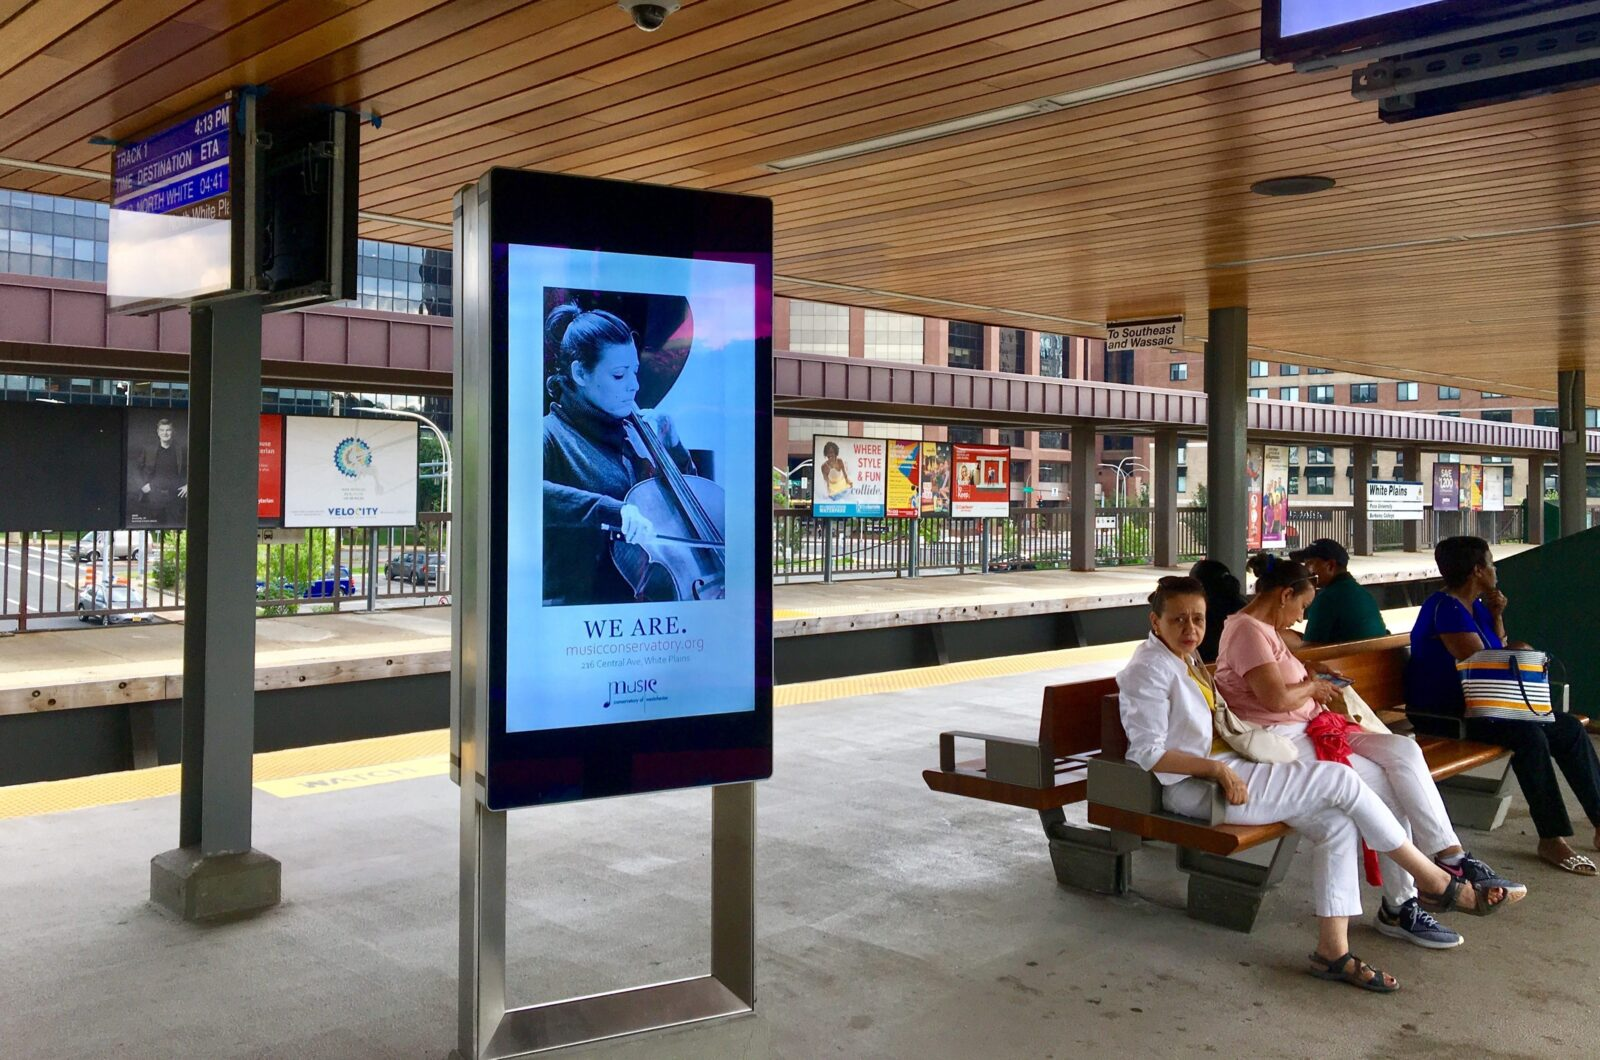 MUSIC CONSERVATORY DIGITAL RAIL ADVERTISING CAMPAIGN